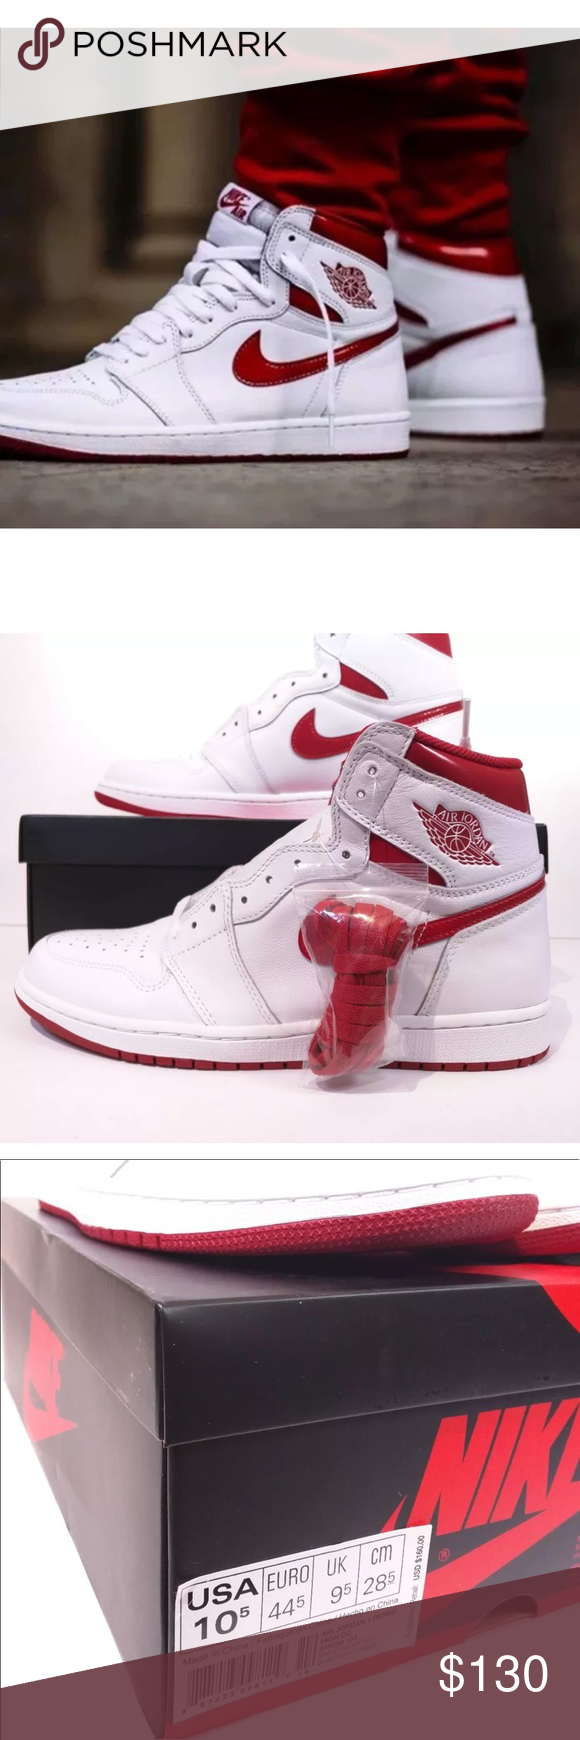 check out 30d0b cf1e5 Nike Air Jordan 1 Retro HighOG Metallic Red White Nike Air Jordan 1 Retro  High OG